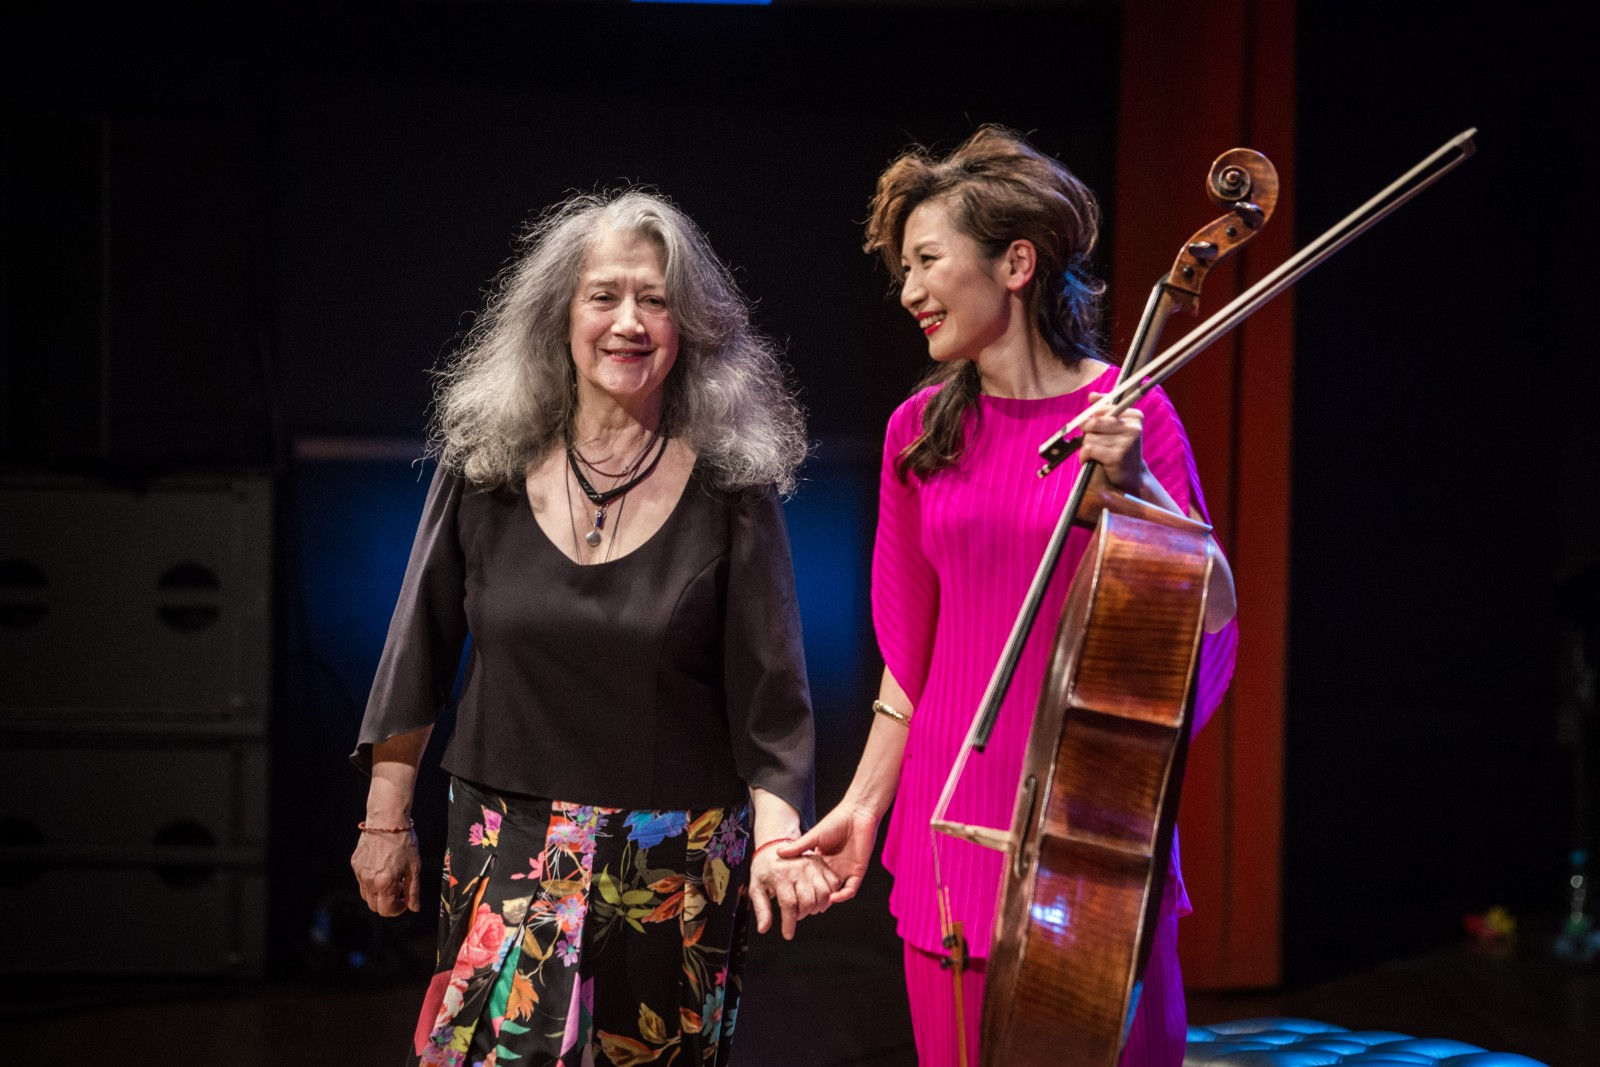 POLIN Music Festival, Roots'n'Fruits, Martha Argerich, Jing Zhao